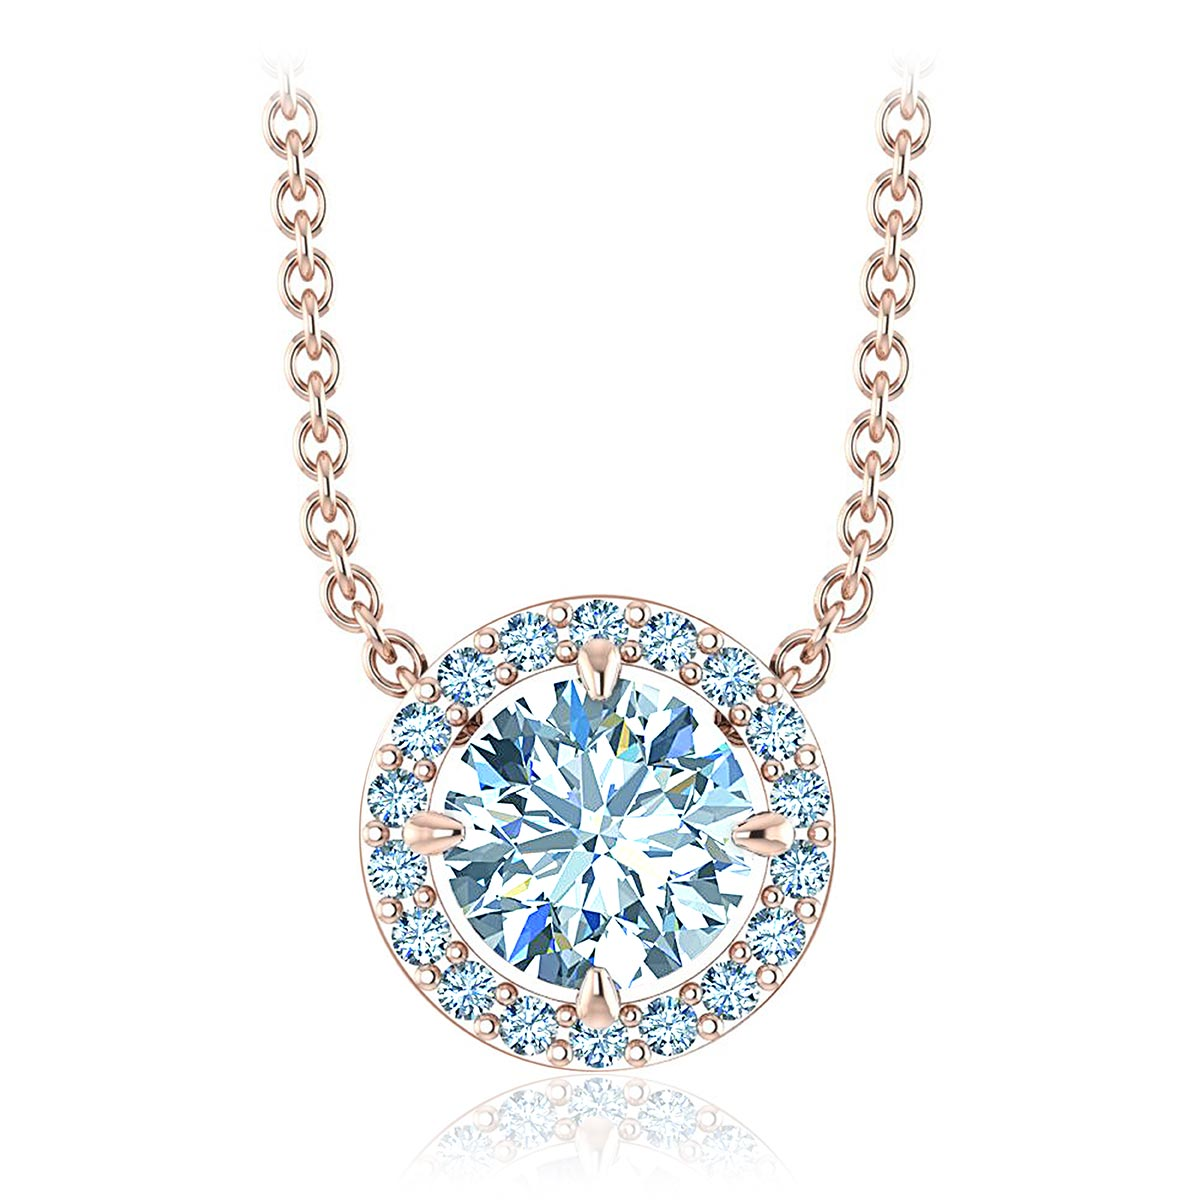 Honesty Diamond Necklace (1/2 CT. TW.)